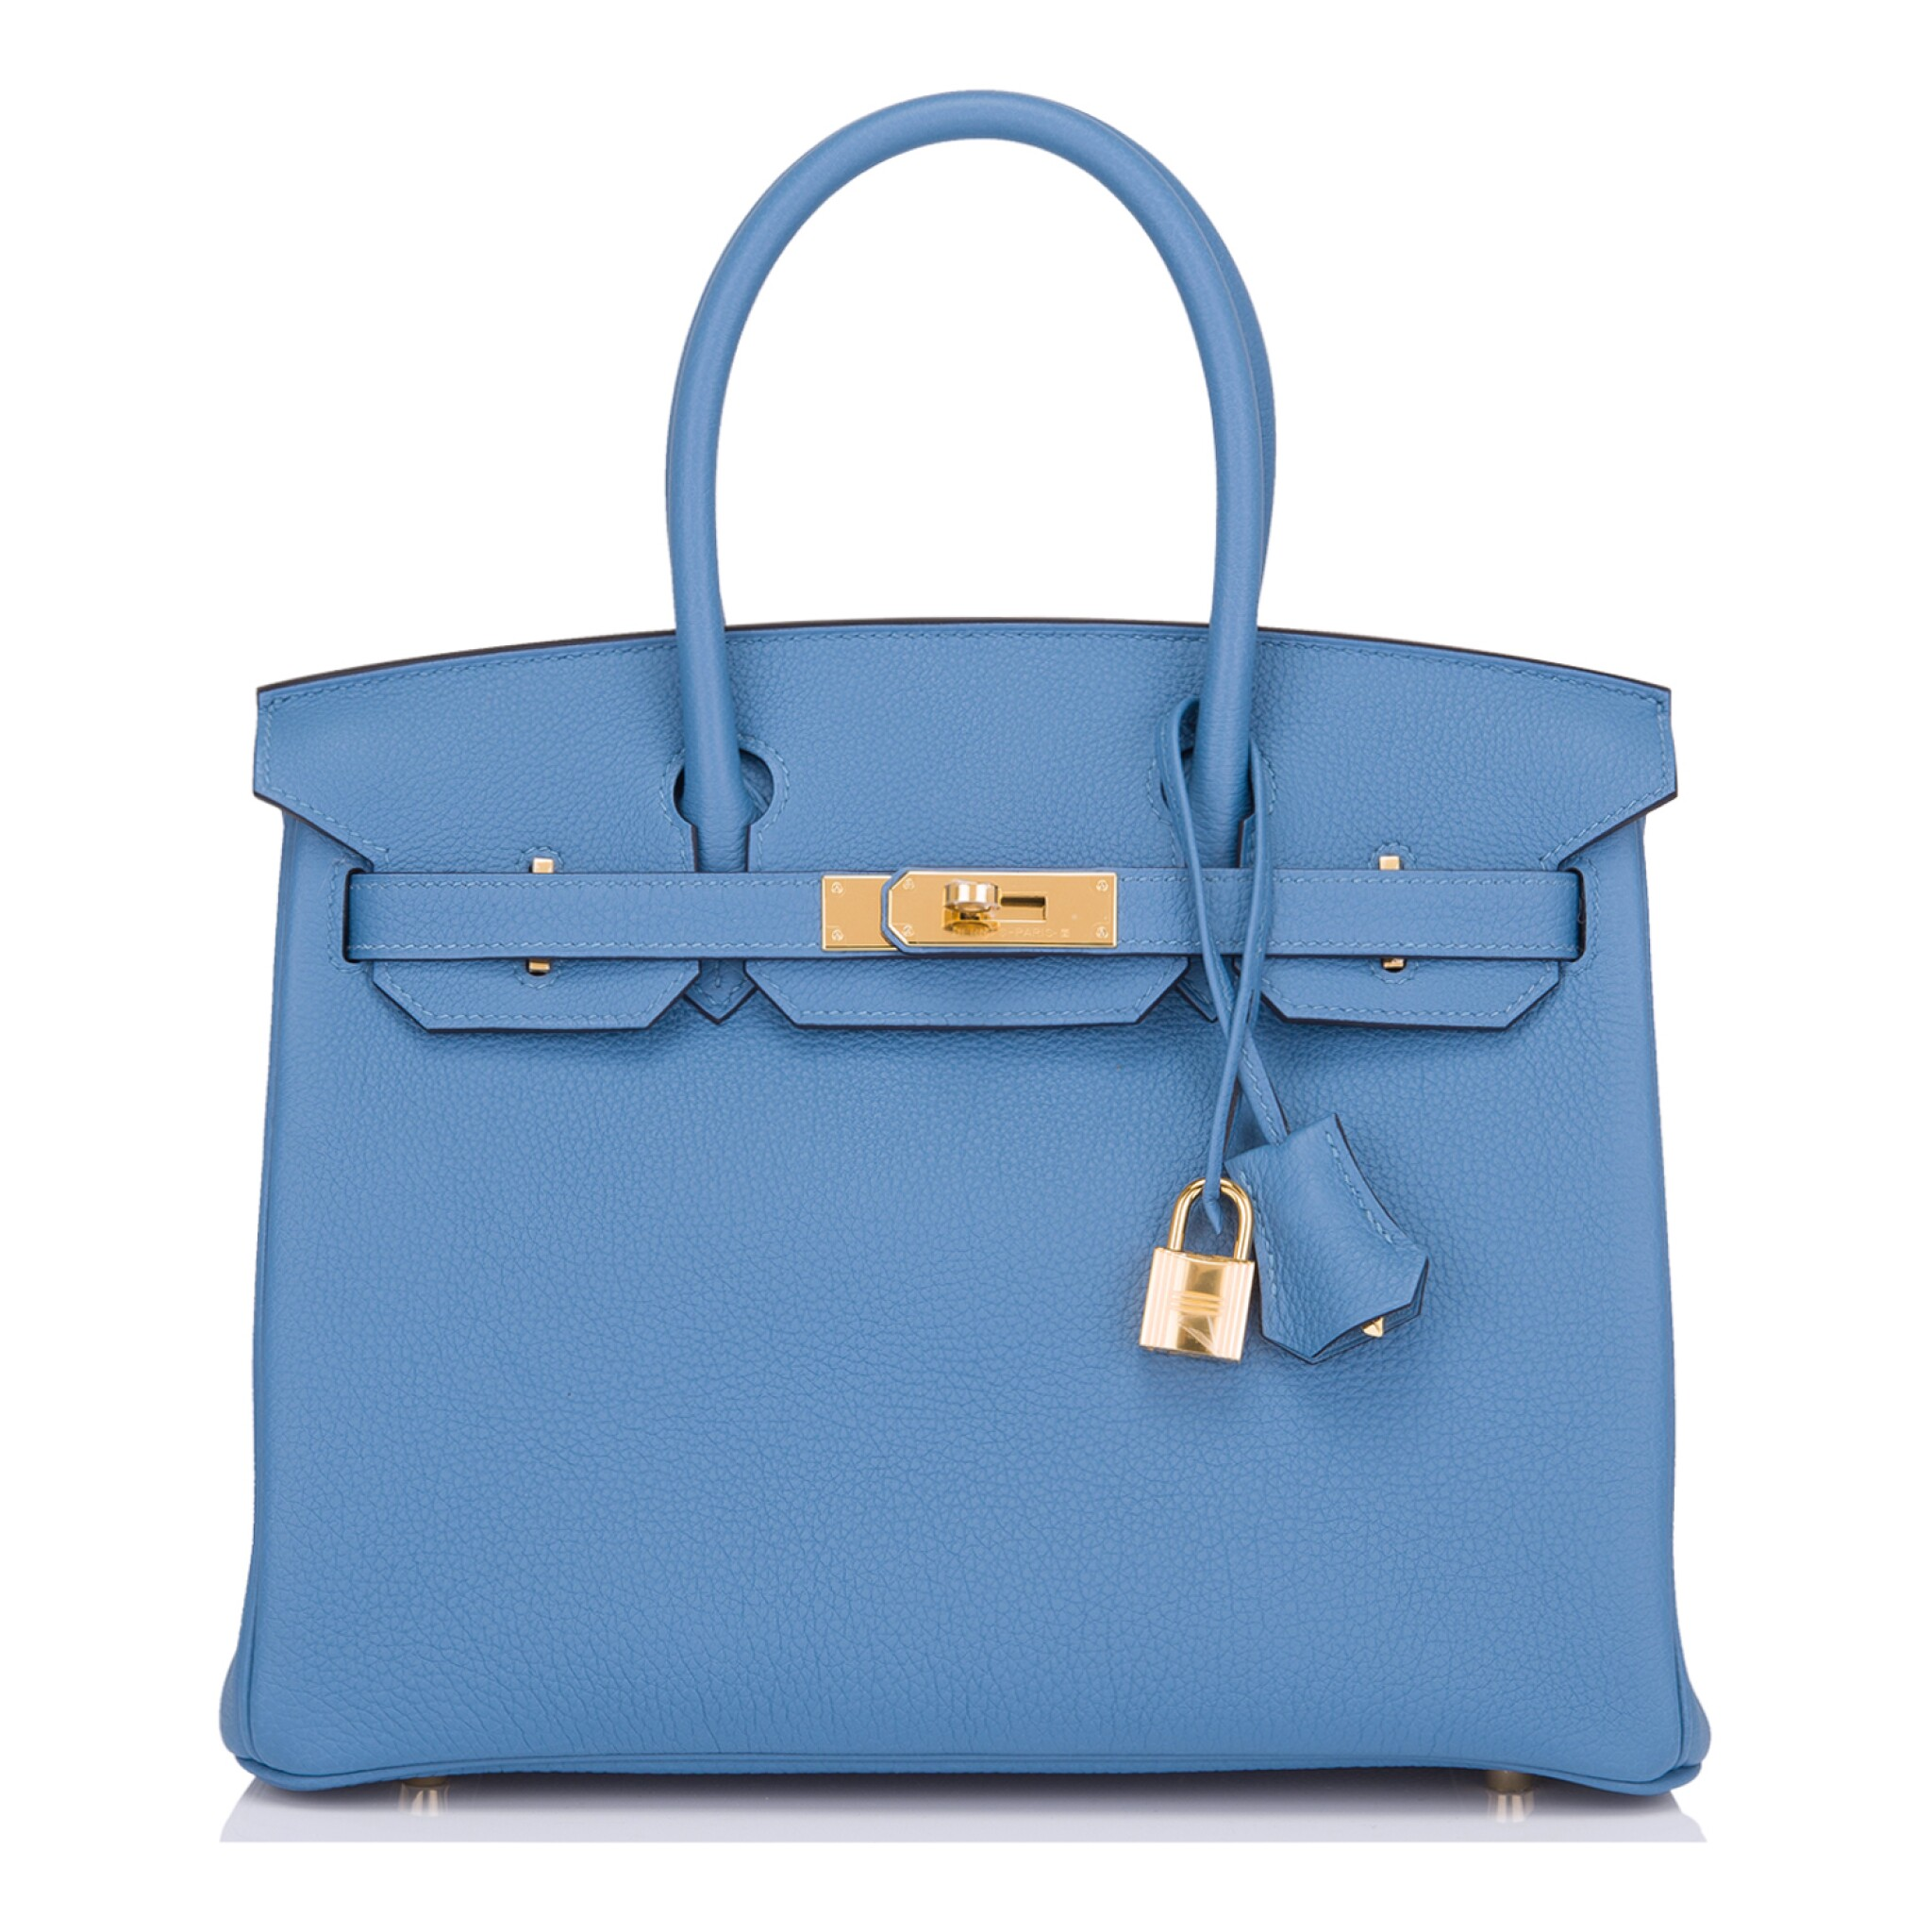 View full screen - View 1 of Lot 22. Hermès Bleu Azur Birkin 30cm of Togo Leather with Gold Hardware.